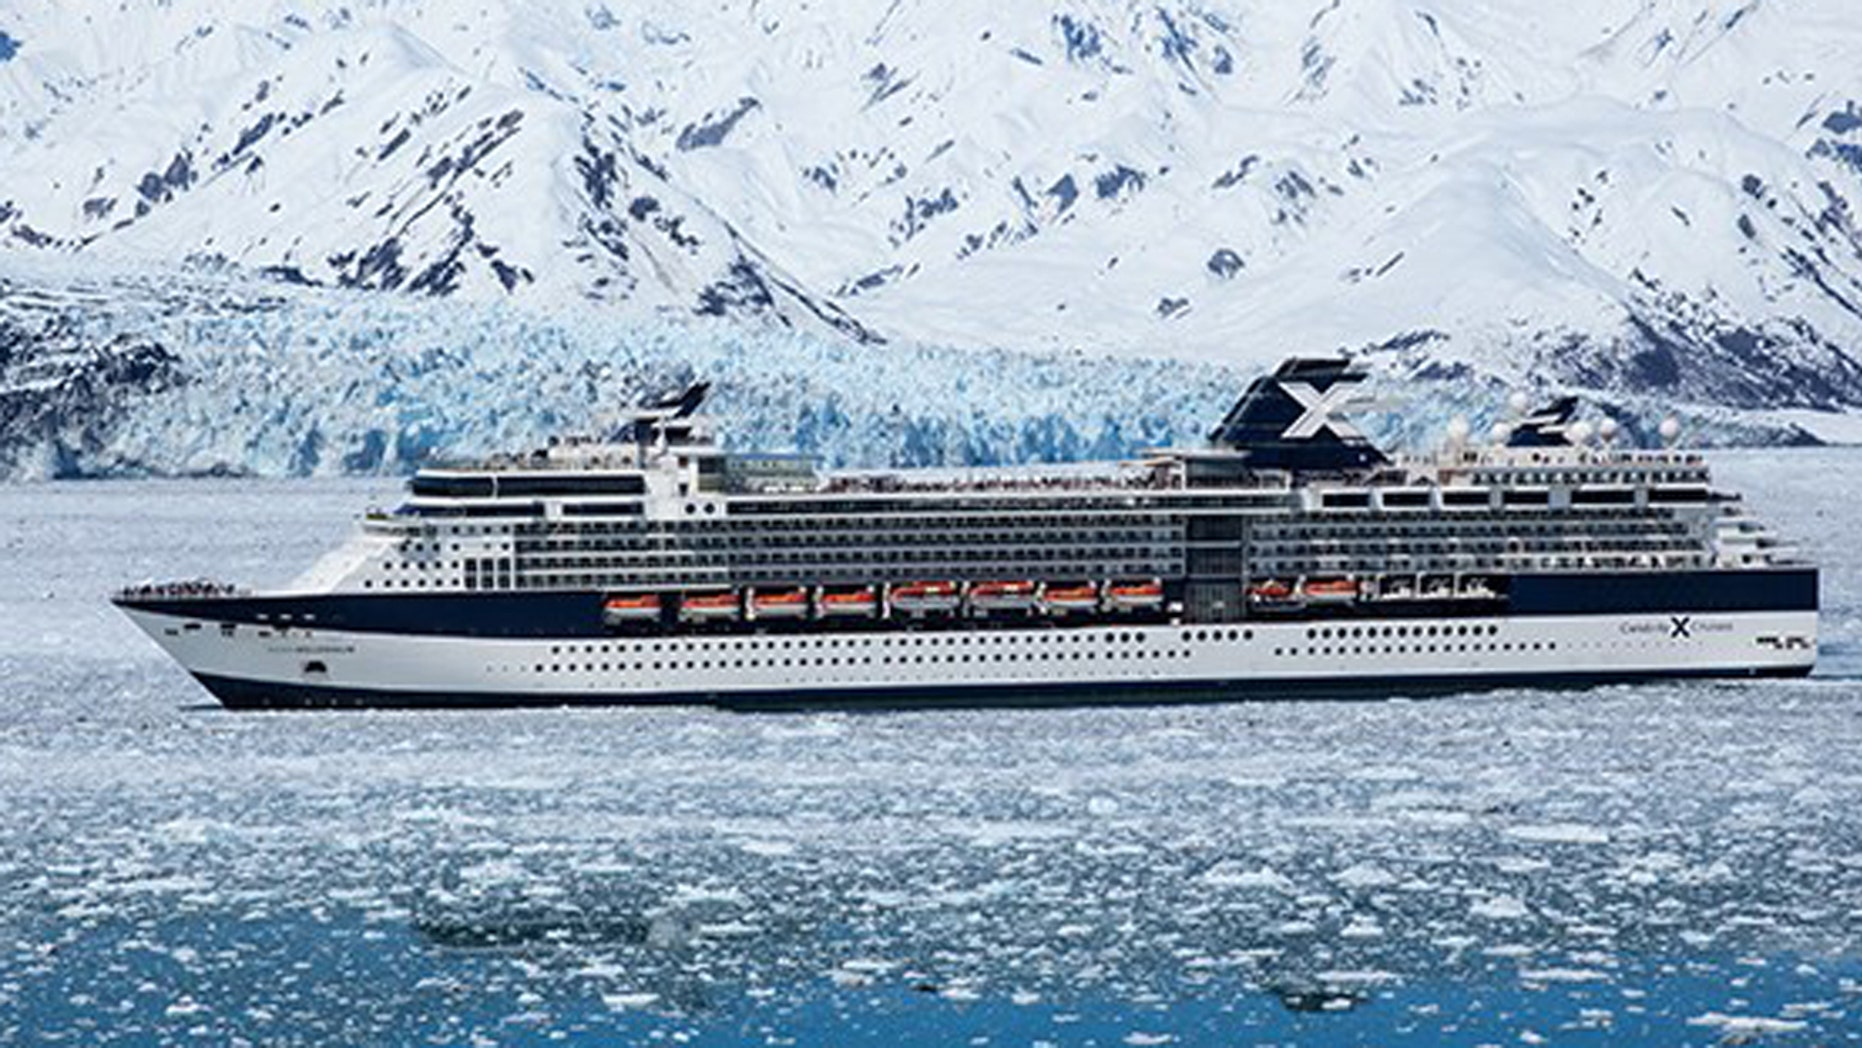 Celebrity features multiple sailings through Alaska.